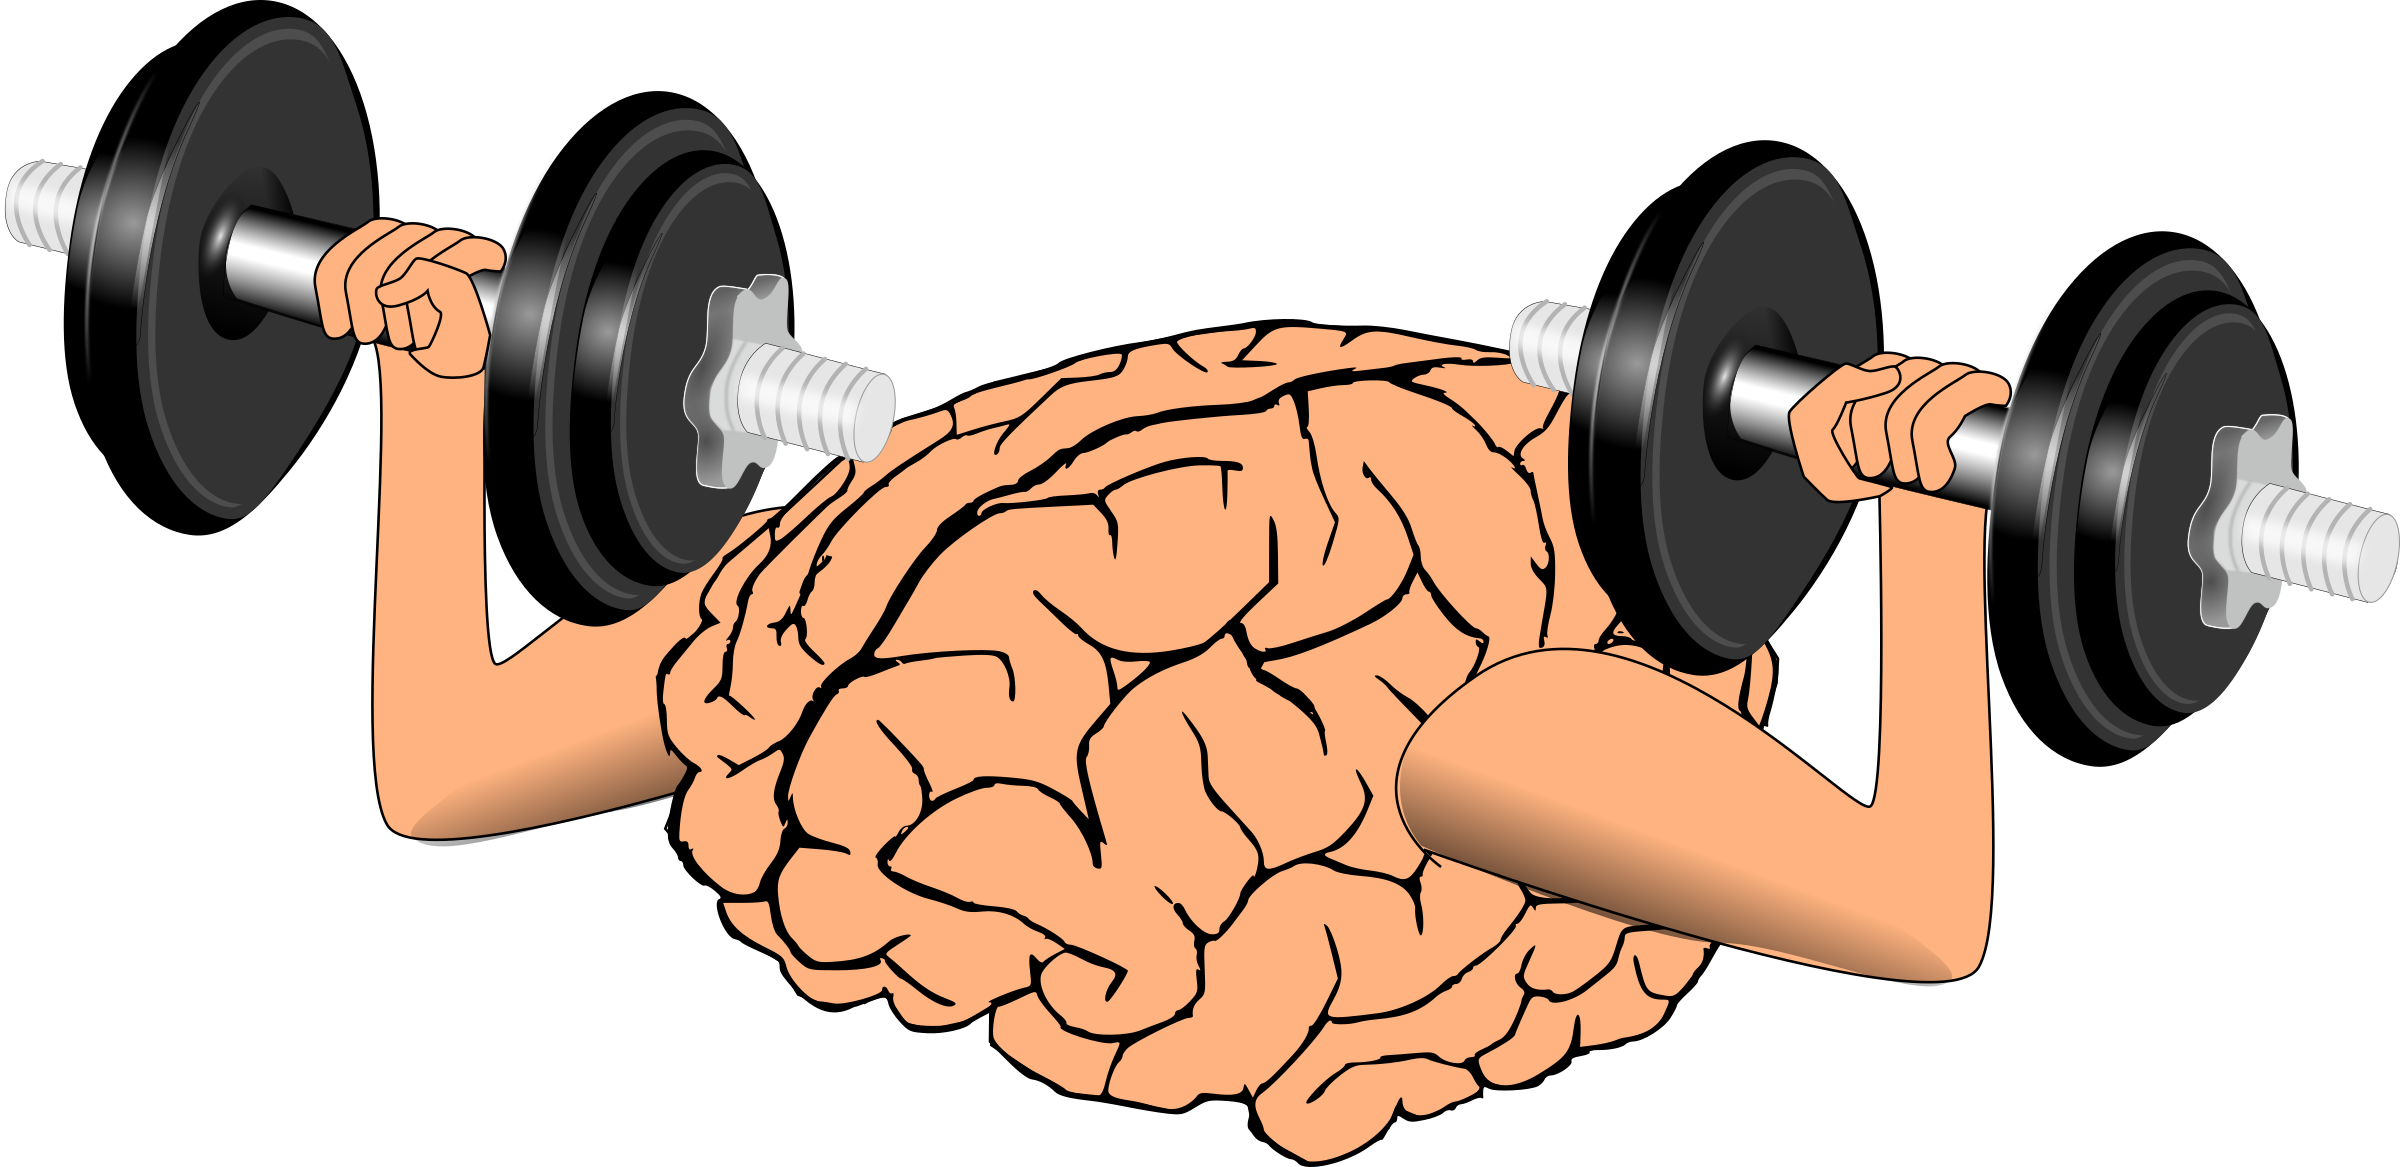 Brain big image png. Training clipart